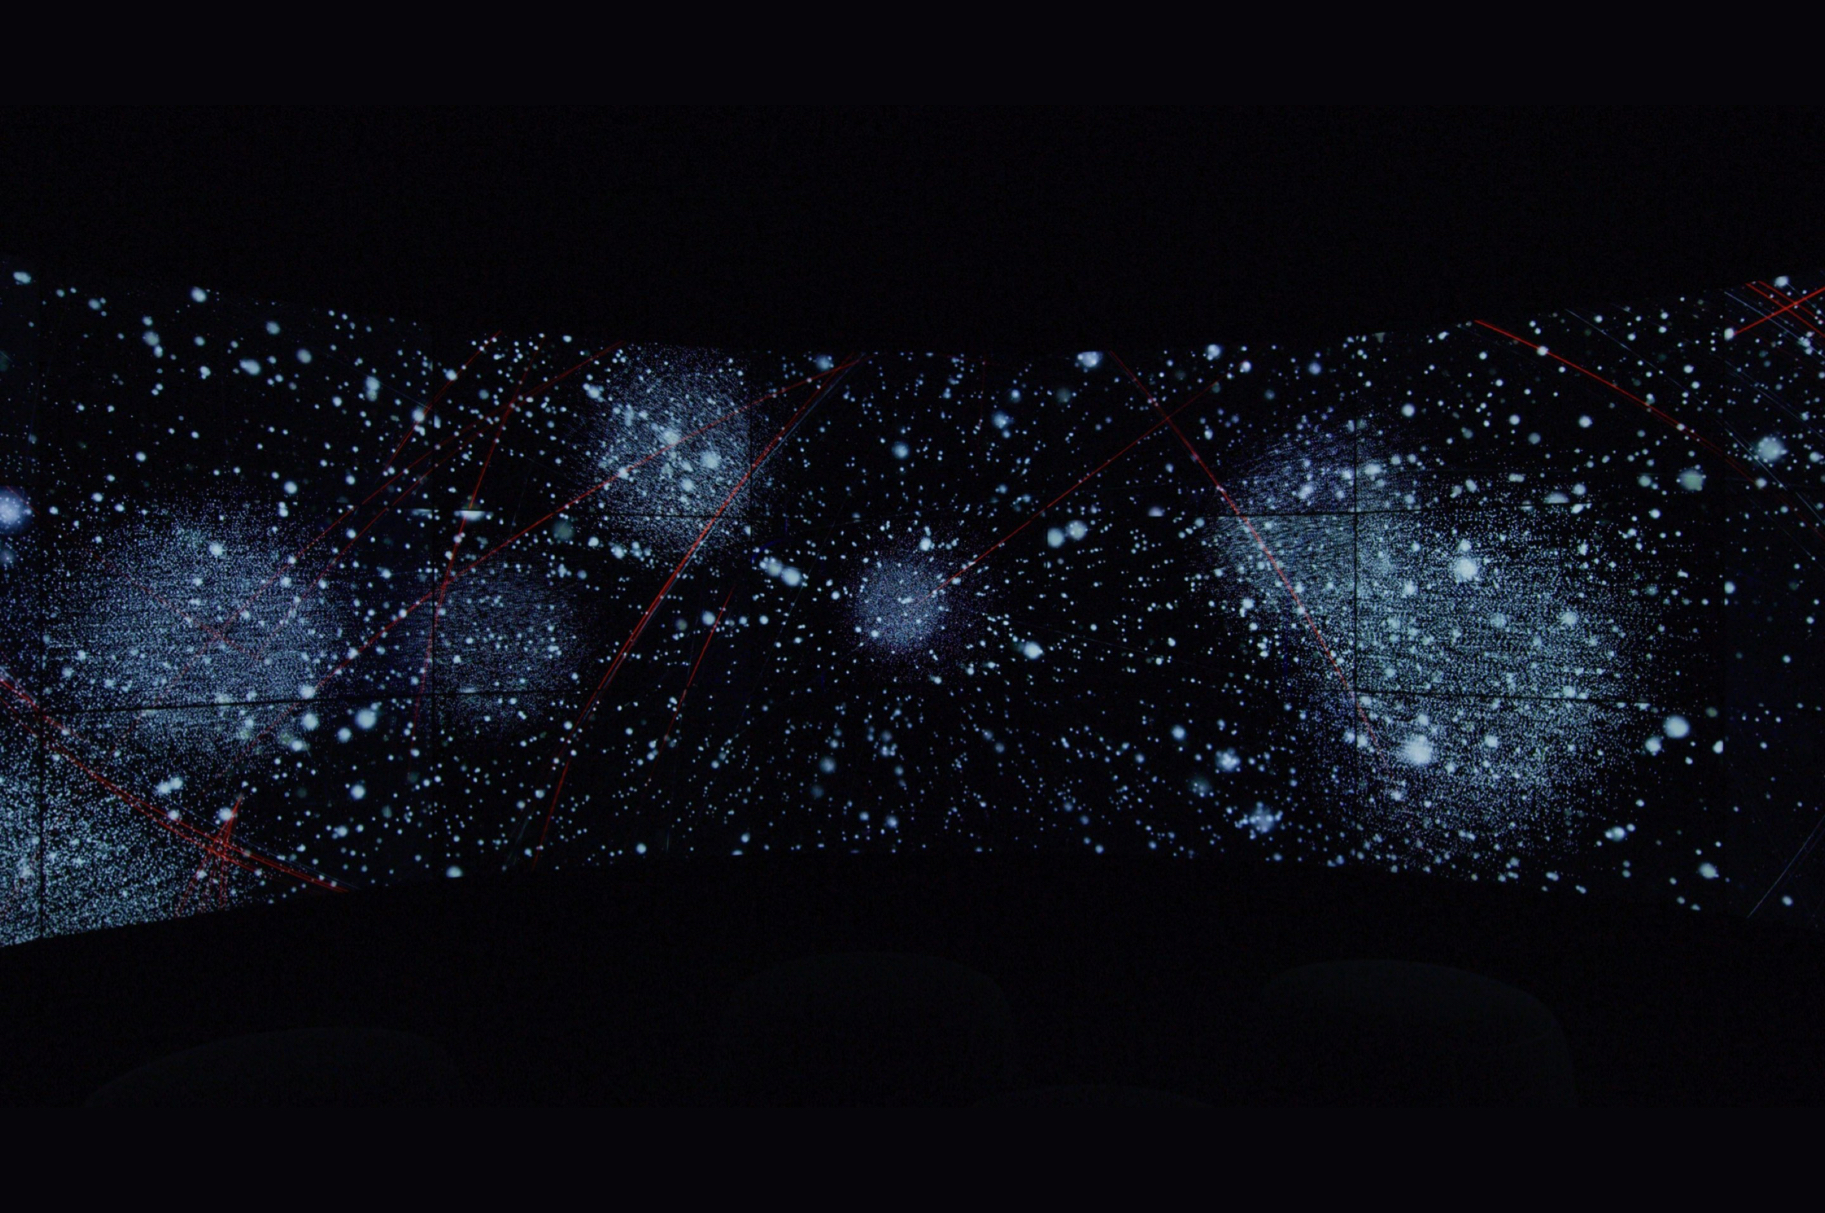 Experience capture showing zooming through 3D space